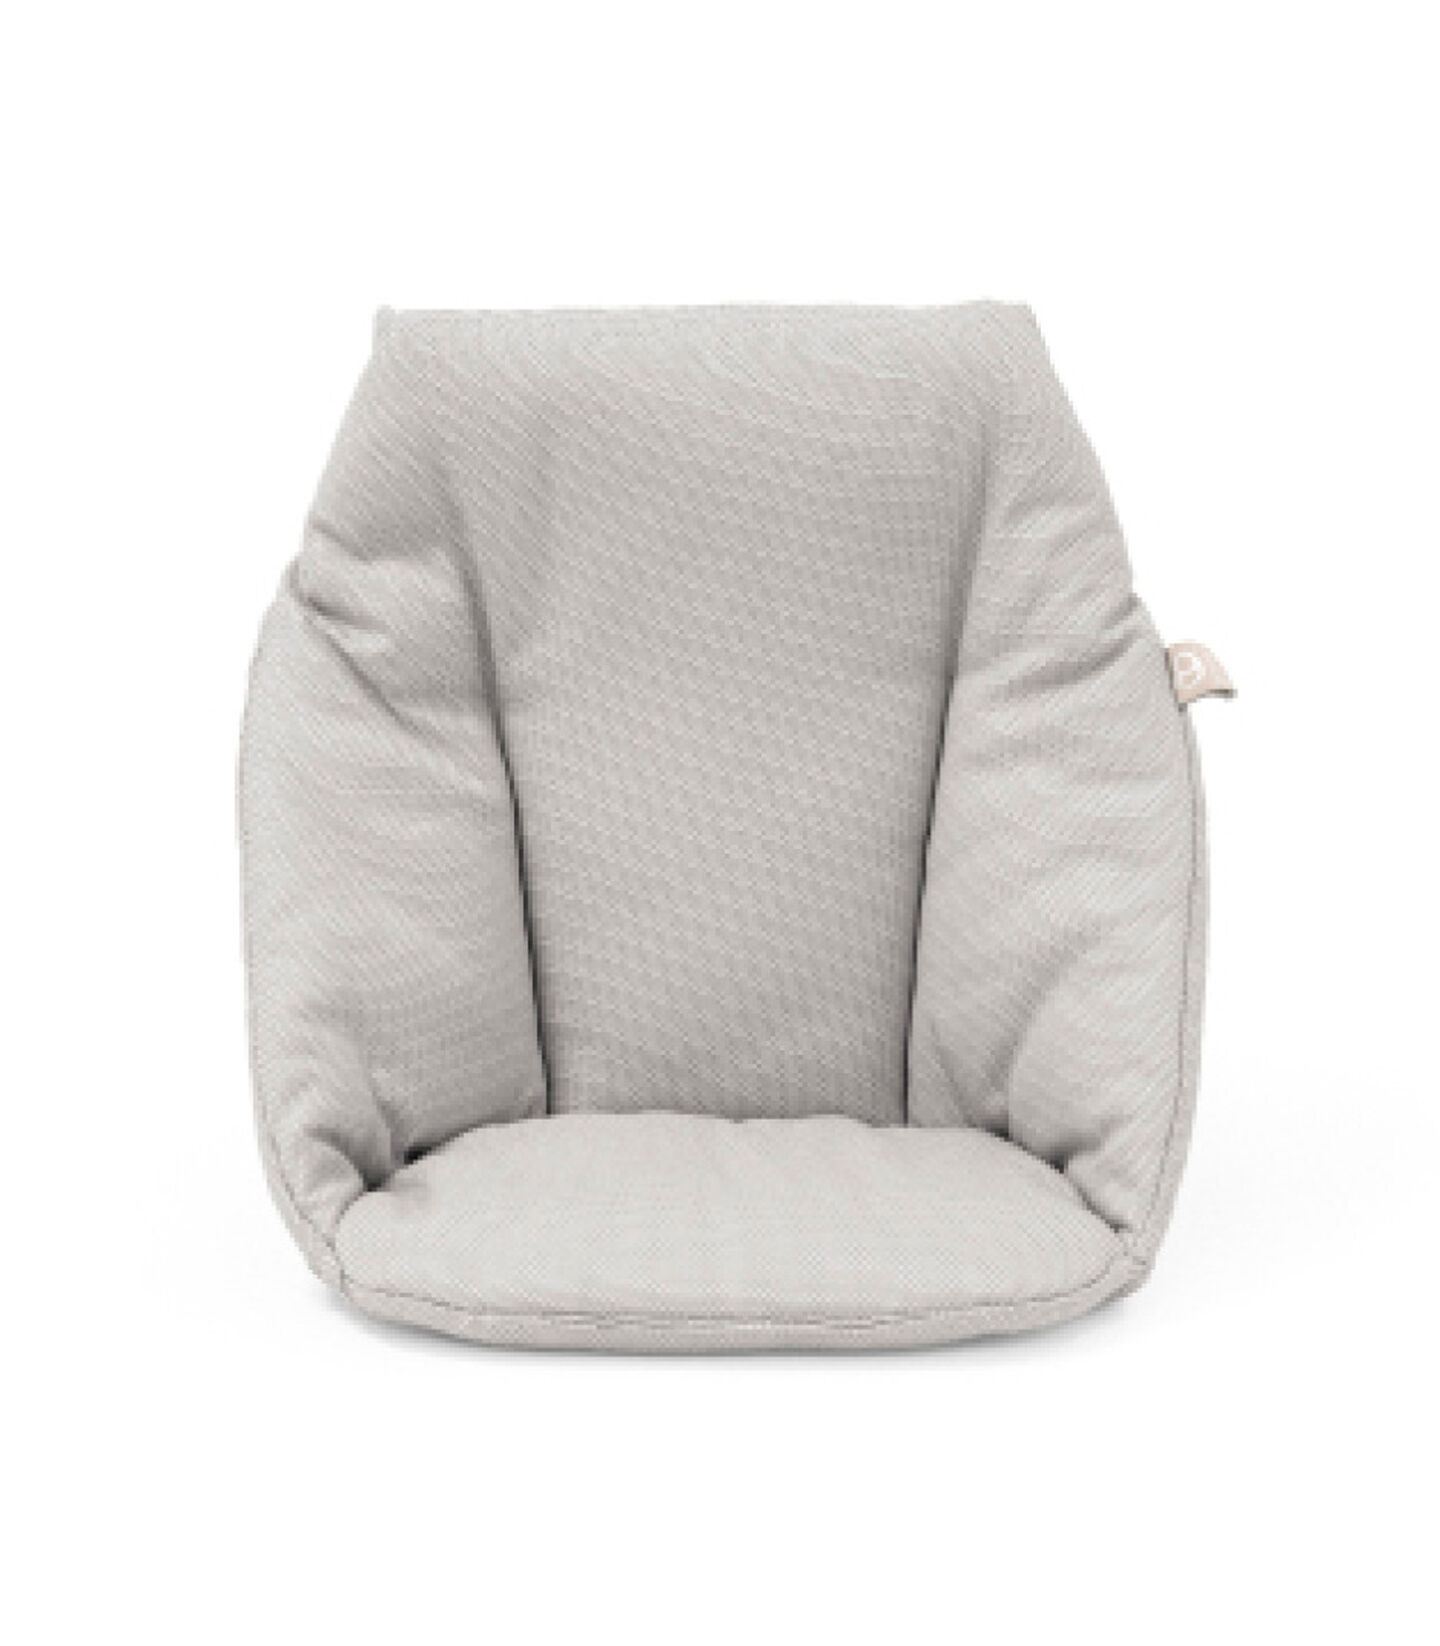 Tripp Trapp® Baby Cushion Timeless Grey.  view 2